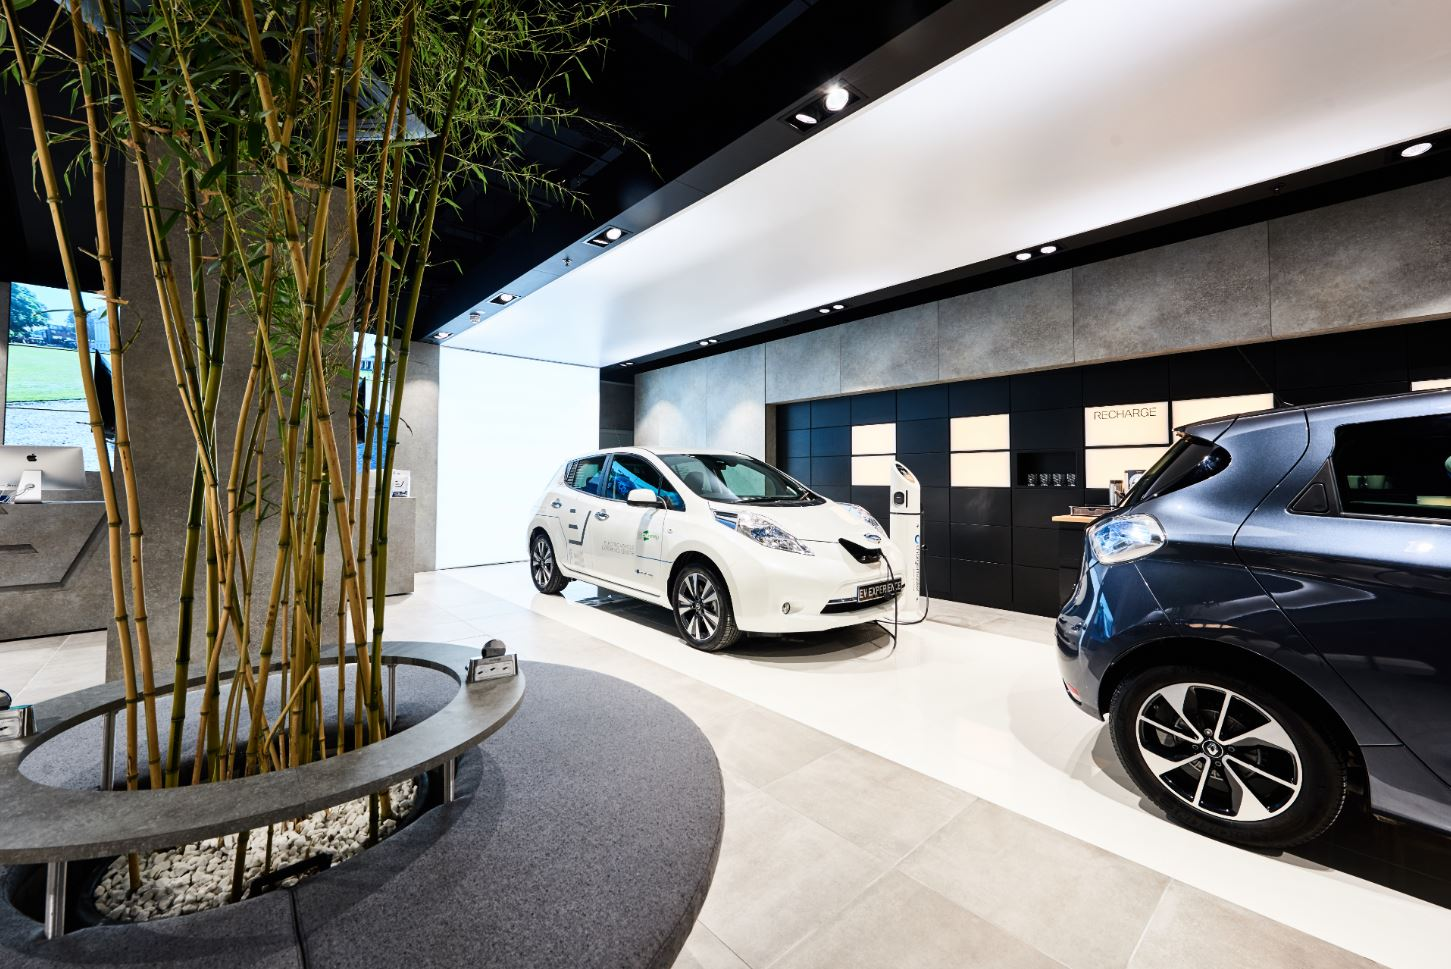 Electric Vehicle Experience Centre opens its doors